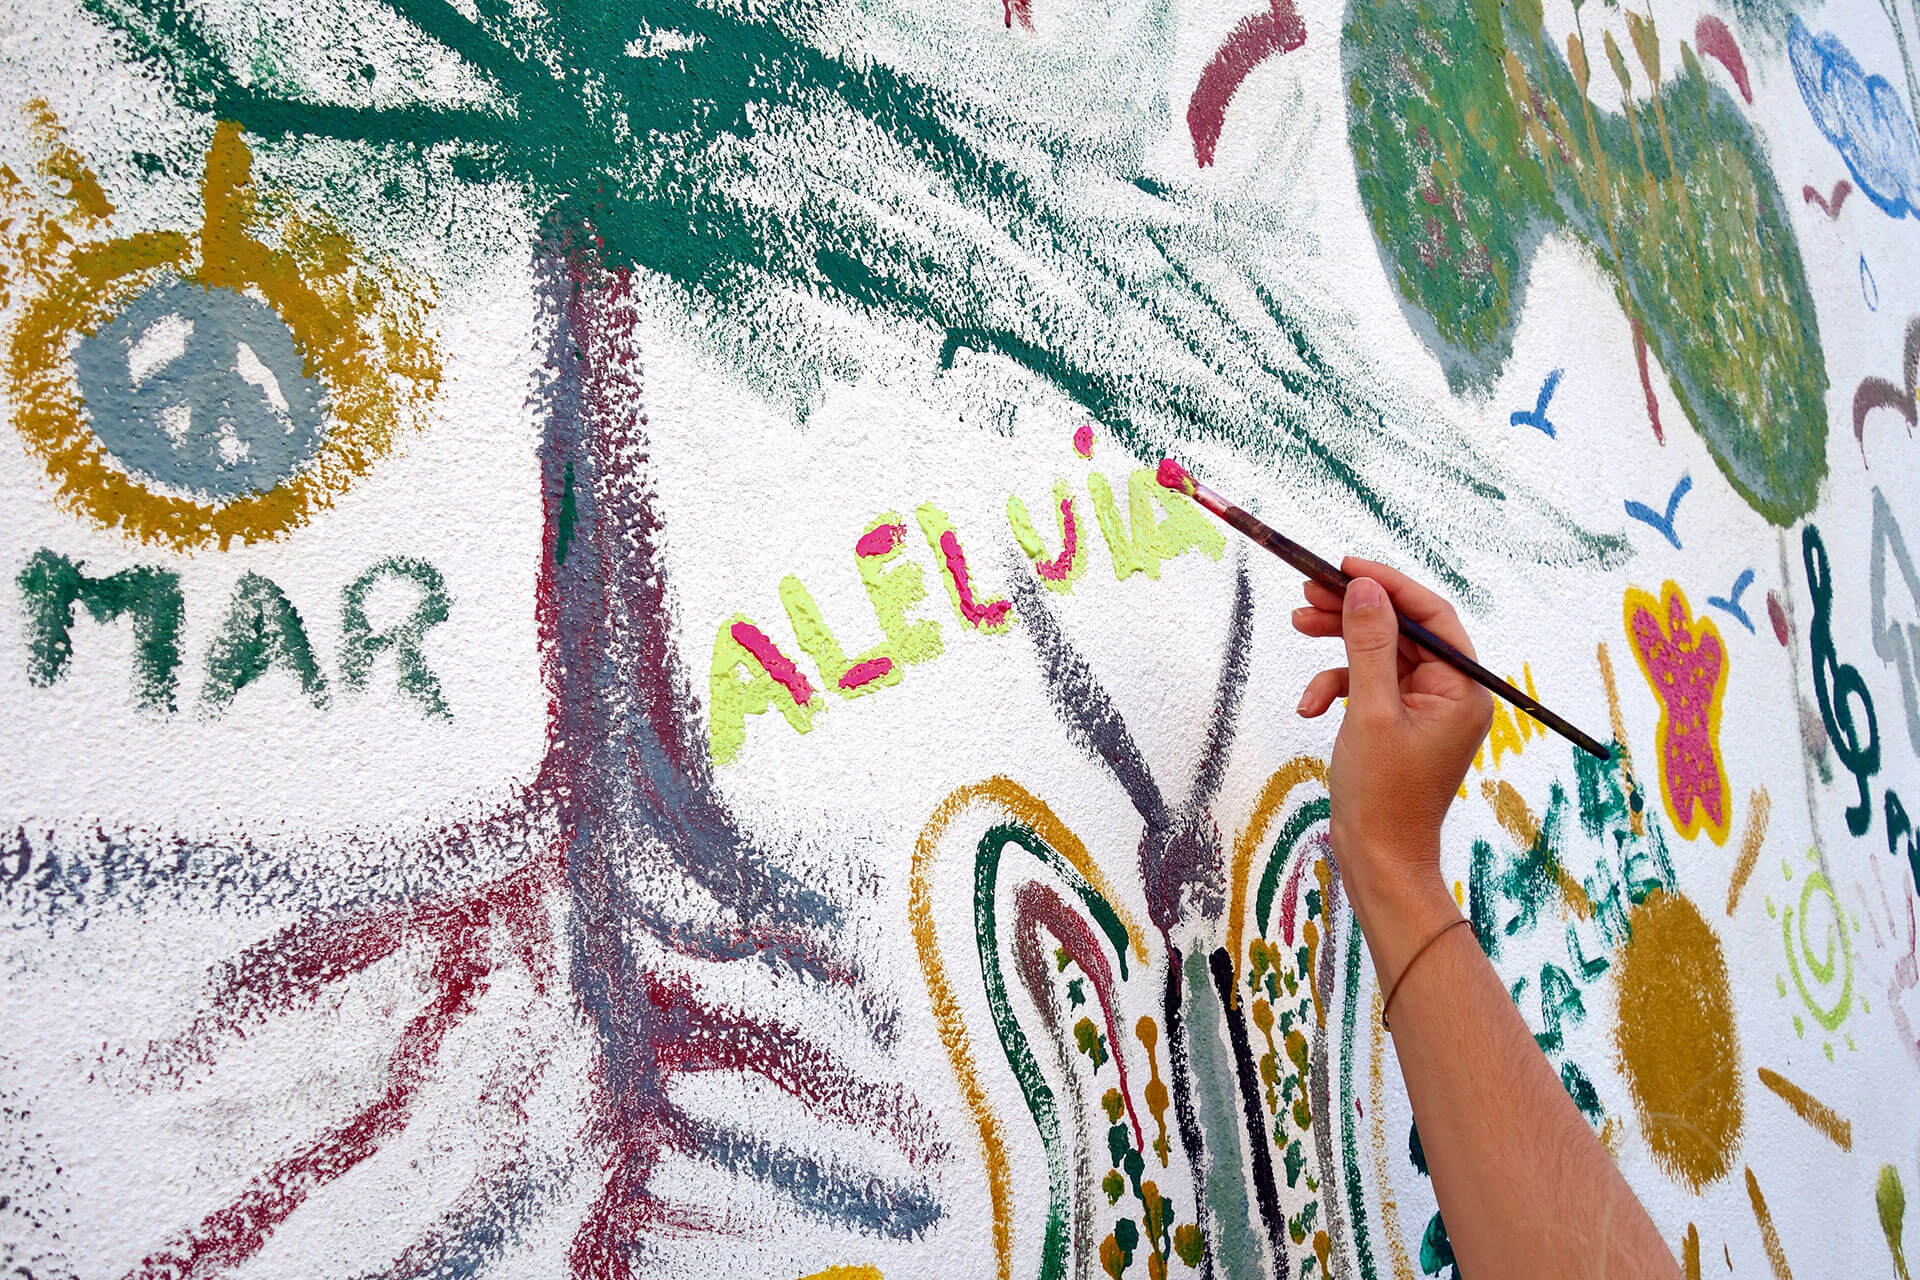 Hand hold a brush to paint a wall with NLP related motifs